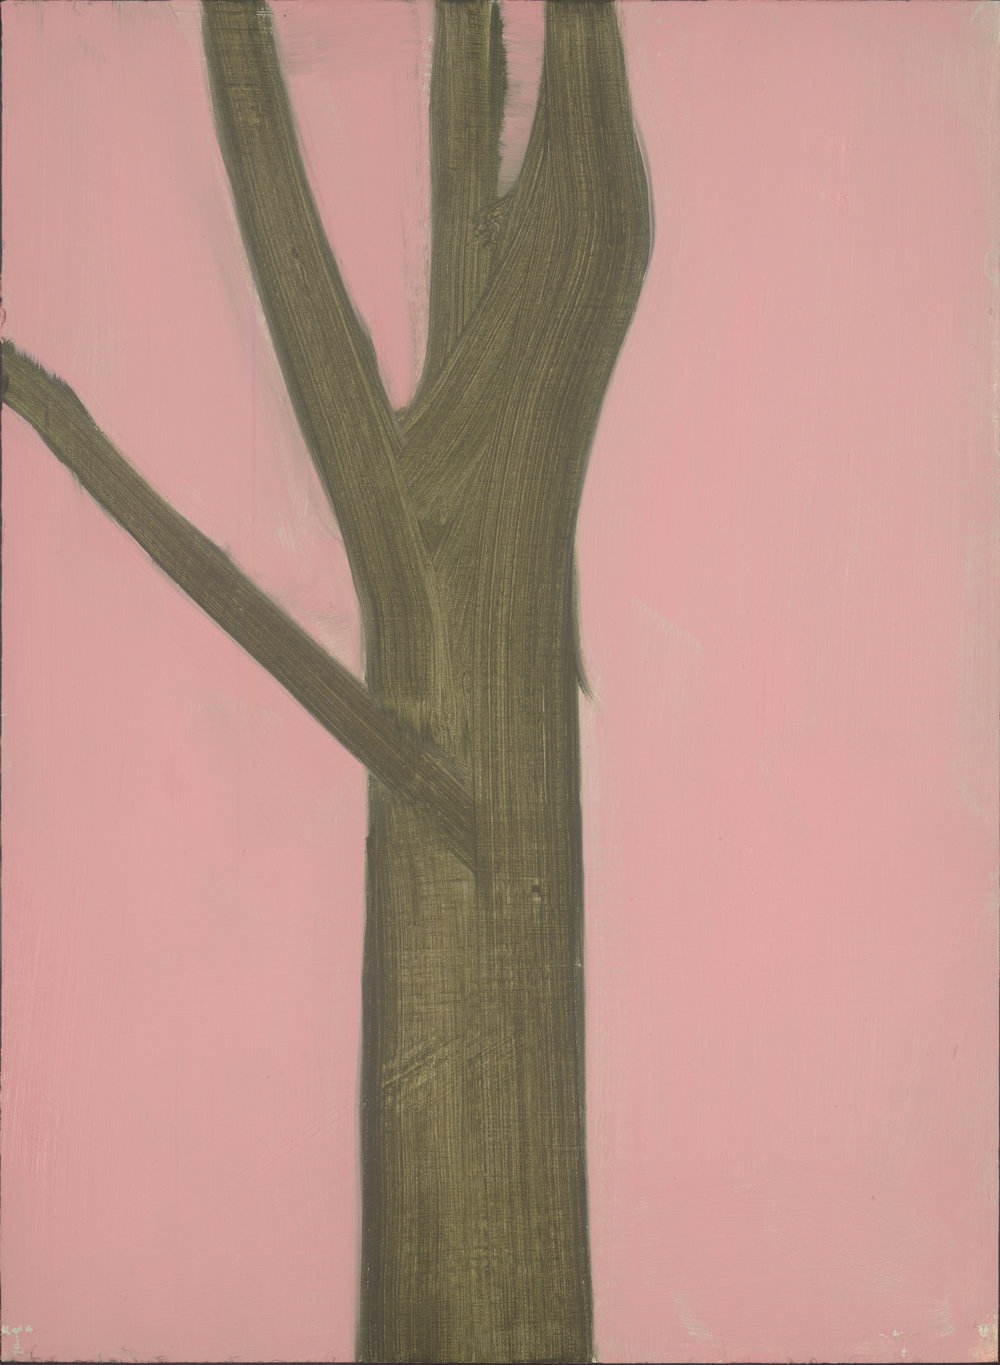 Pink Wall, oil on linen on board, 40x29.5 cm (sold)